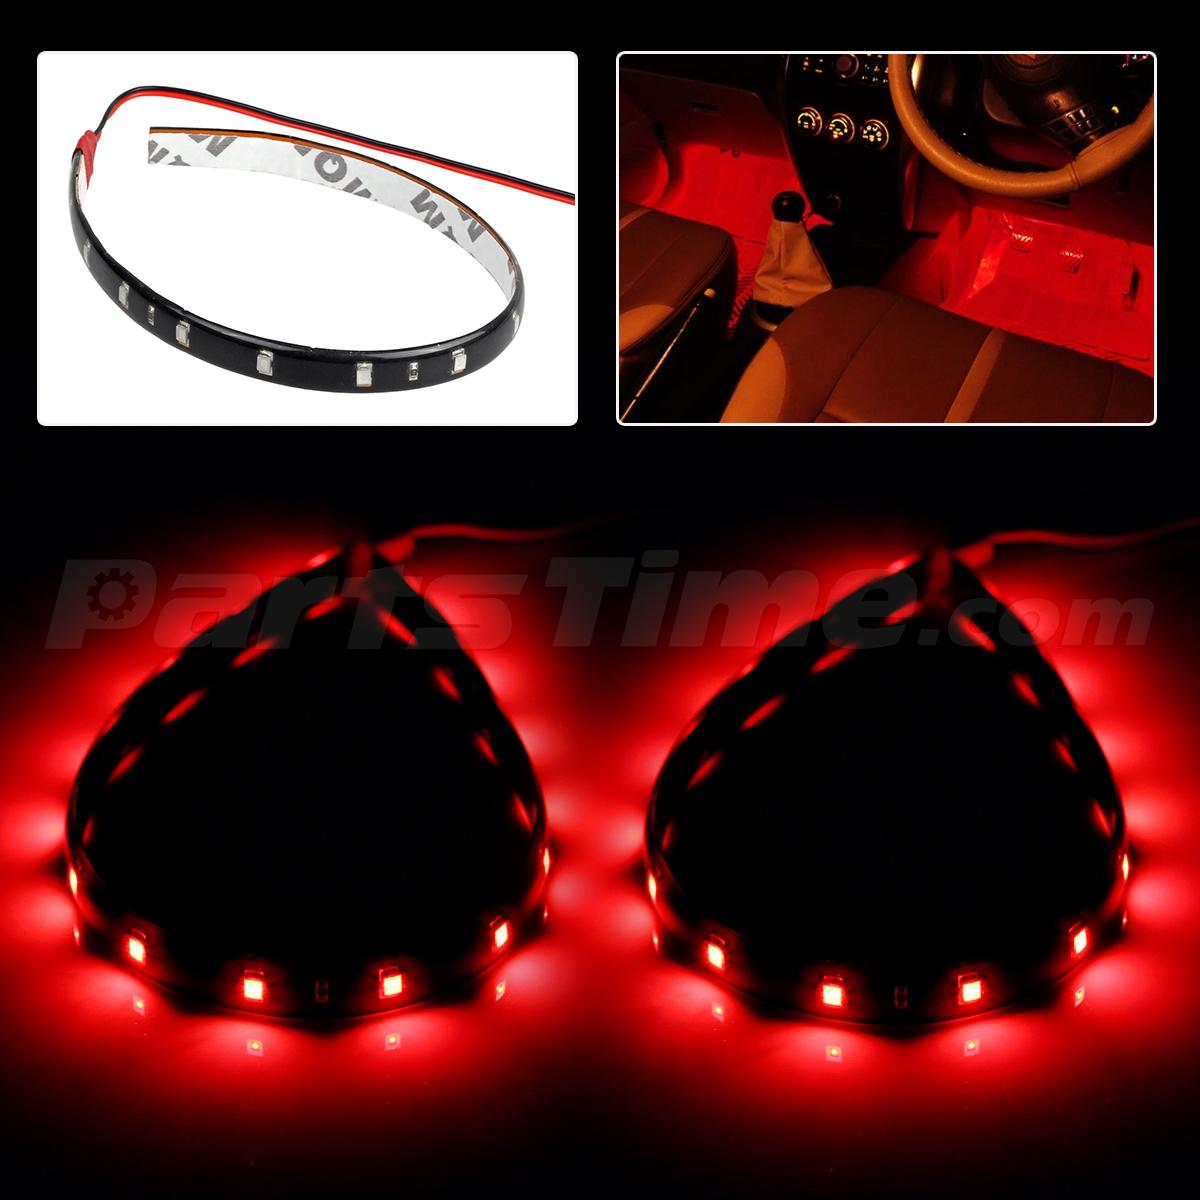 2x auto interior red light waterproof 15 led light flexible strip 30cm internal ebay. Black Bedroom Furniture Sets. Home Design Ideas